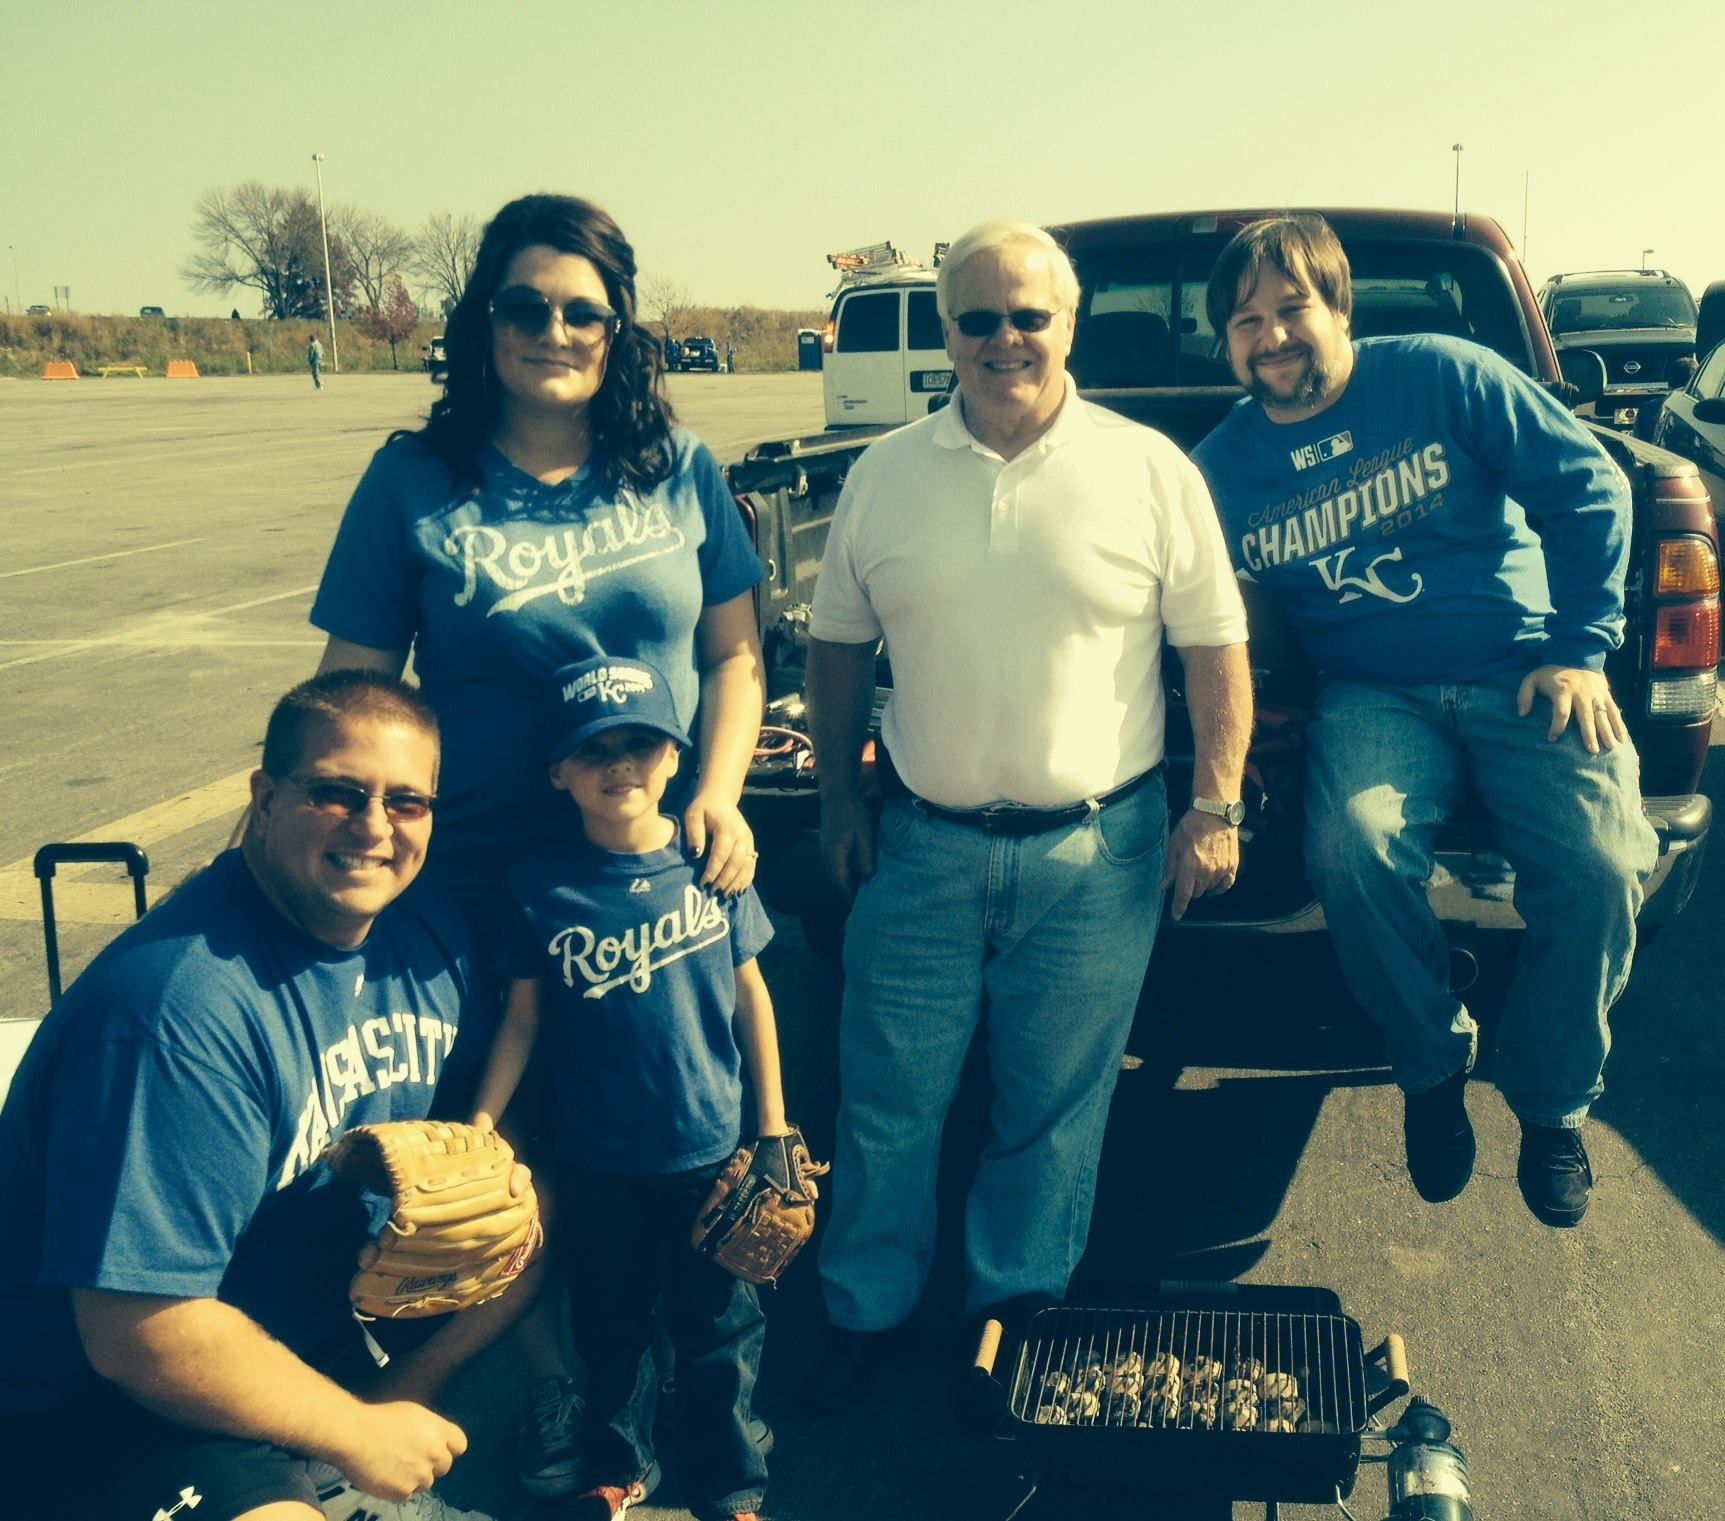 Matt Gerry and a group of friends were interviewed on KSAL Radio as they tailgated at the World Series.